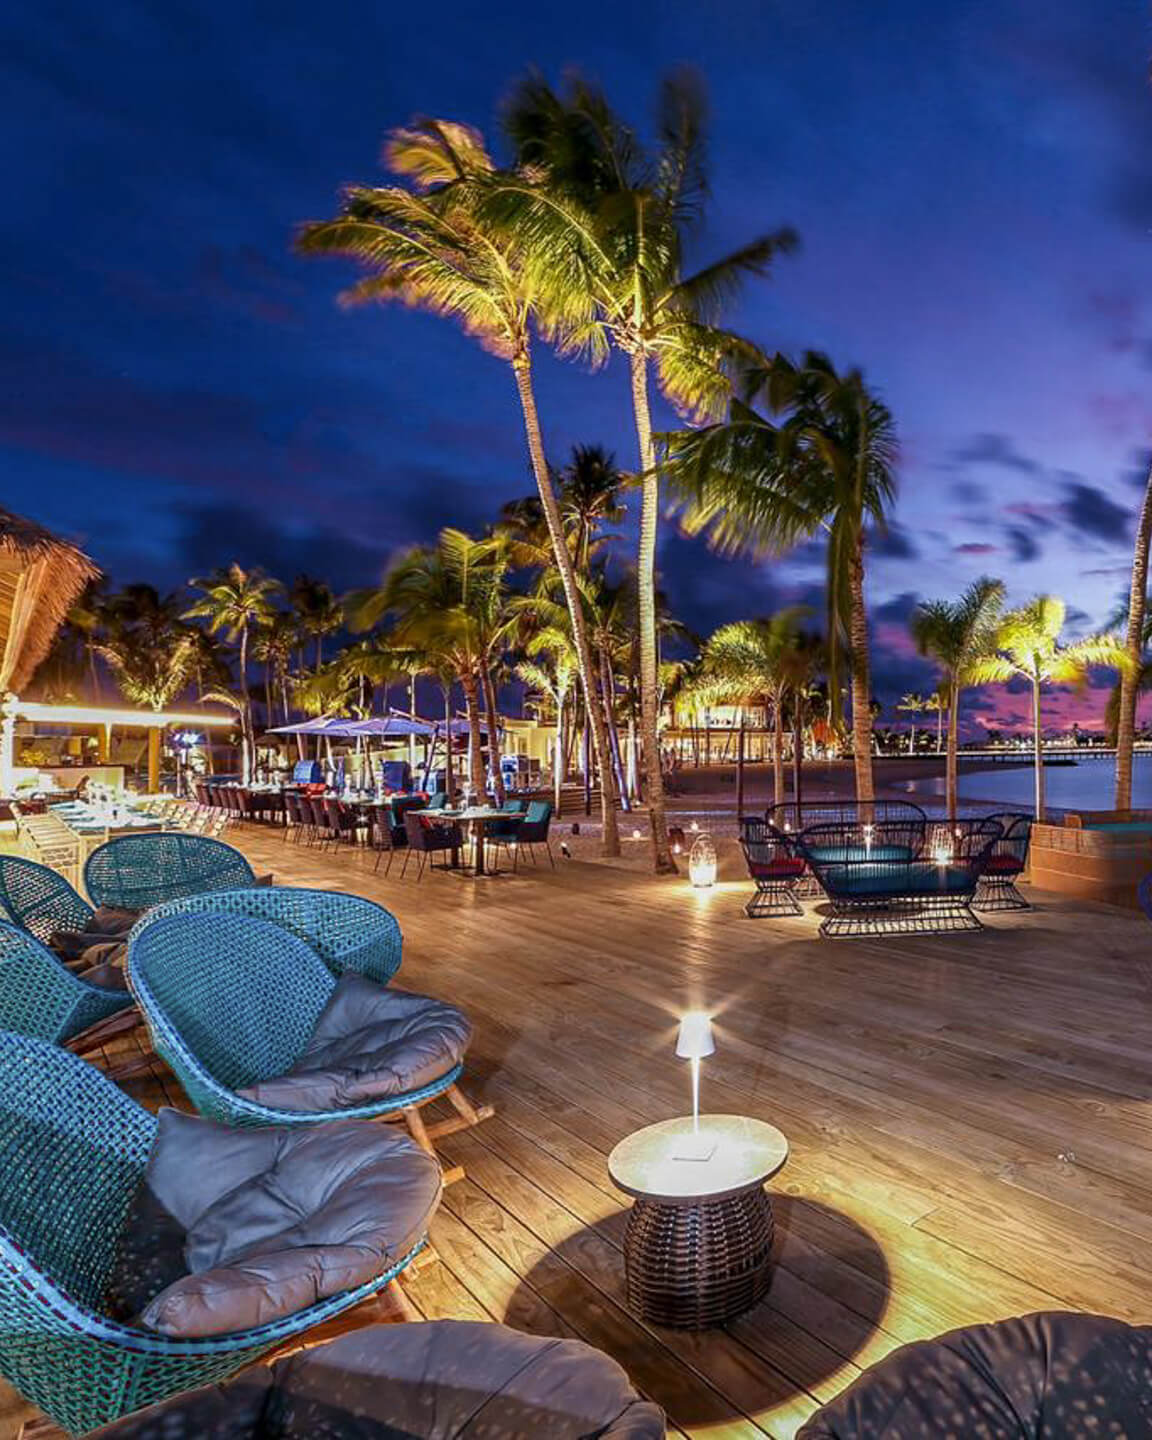 the elephant and butterfly restaurant at the har rock hotel maldives at night surrounded by palm trees